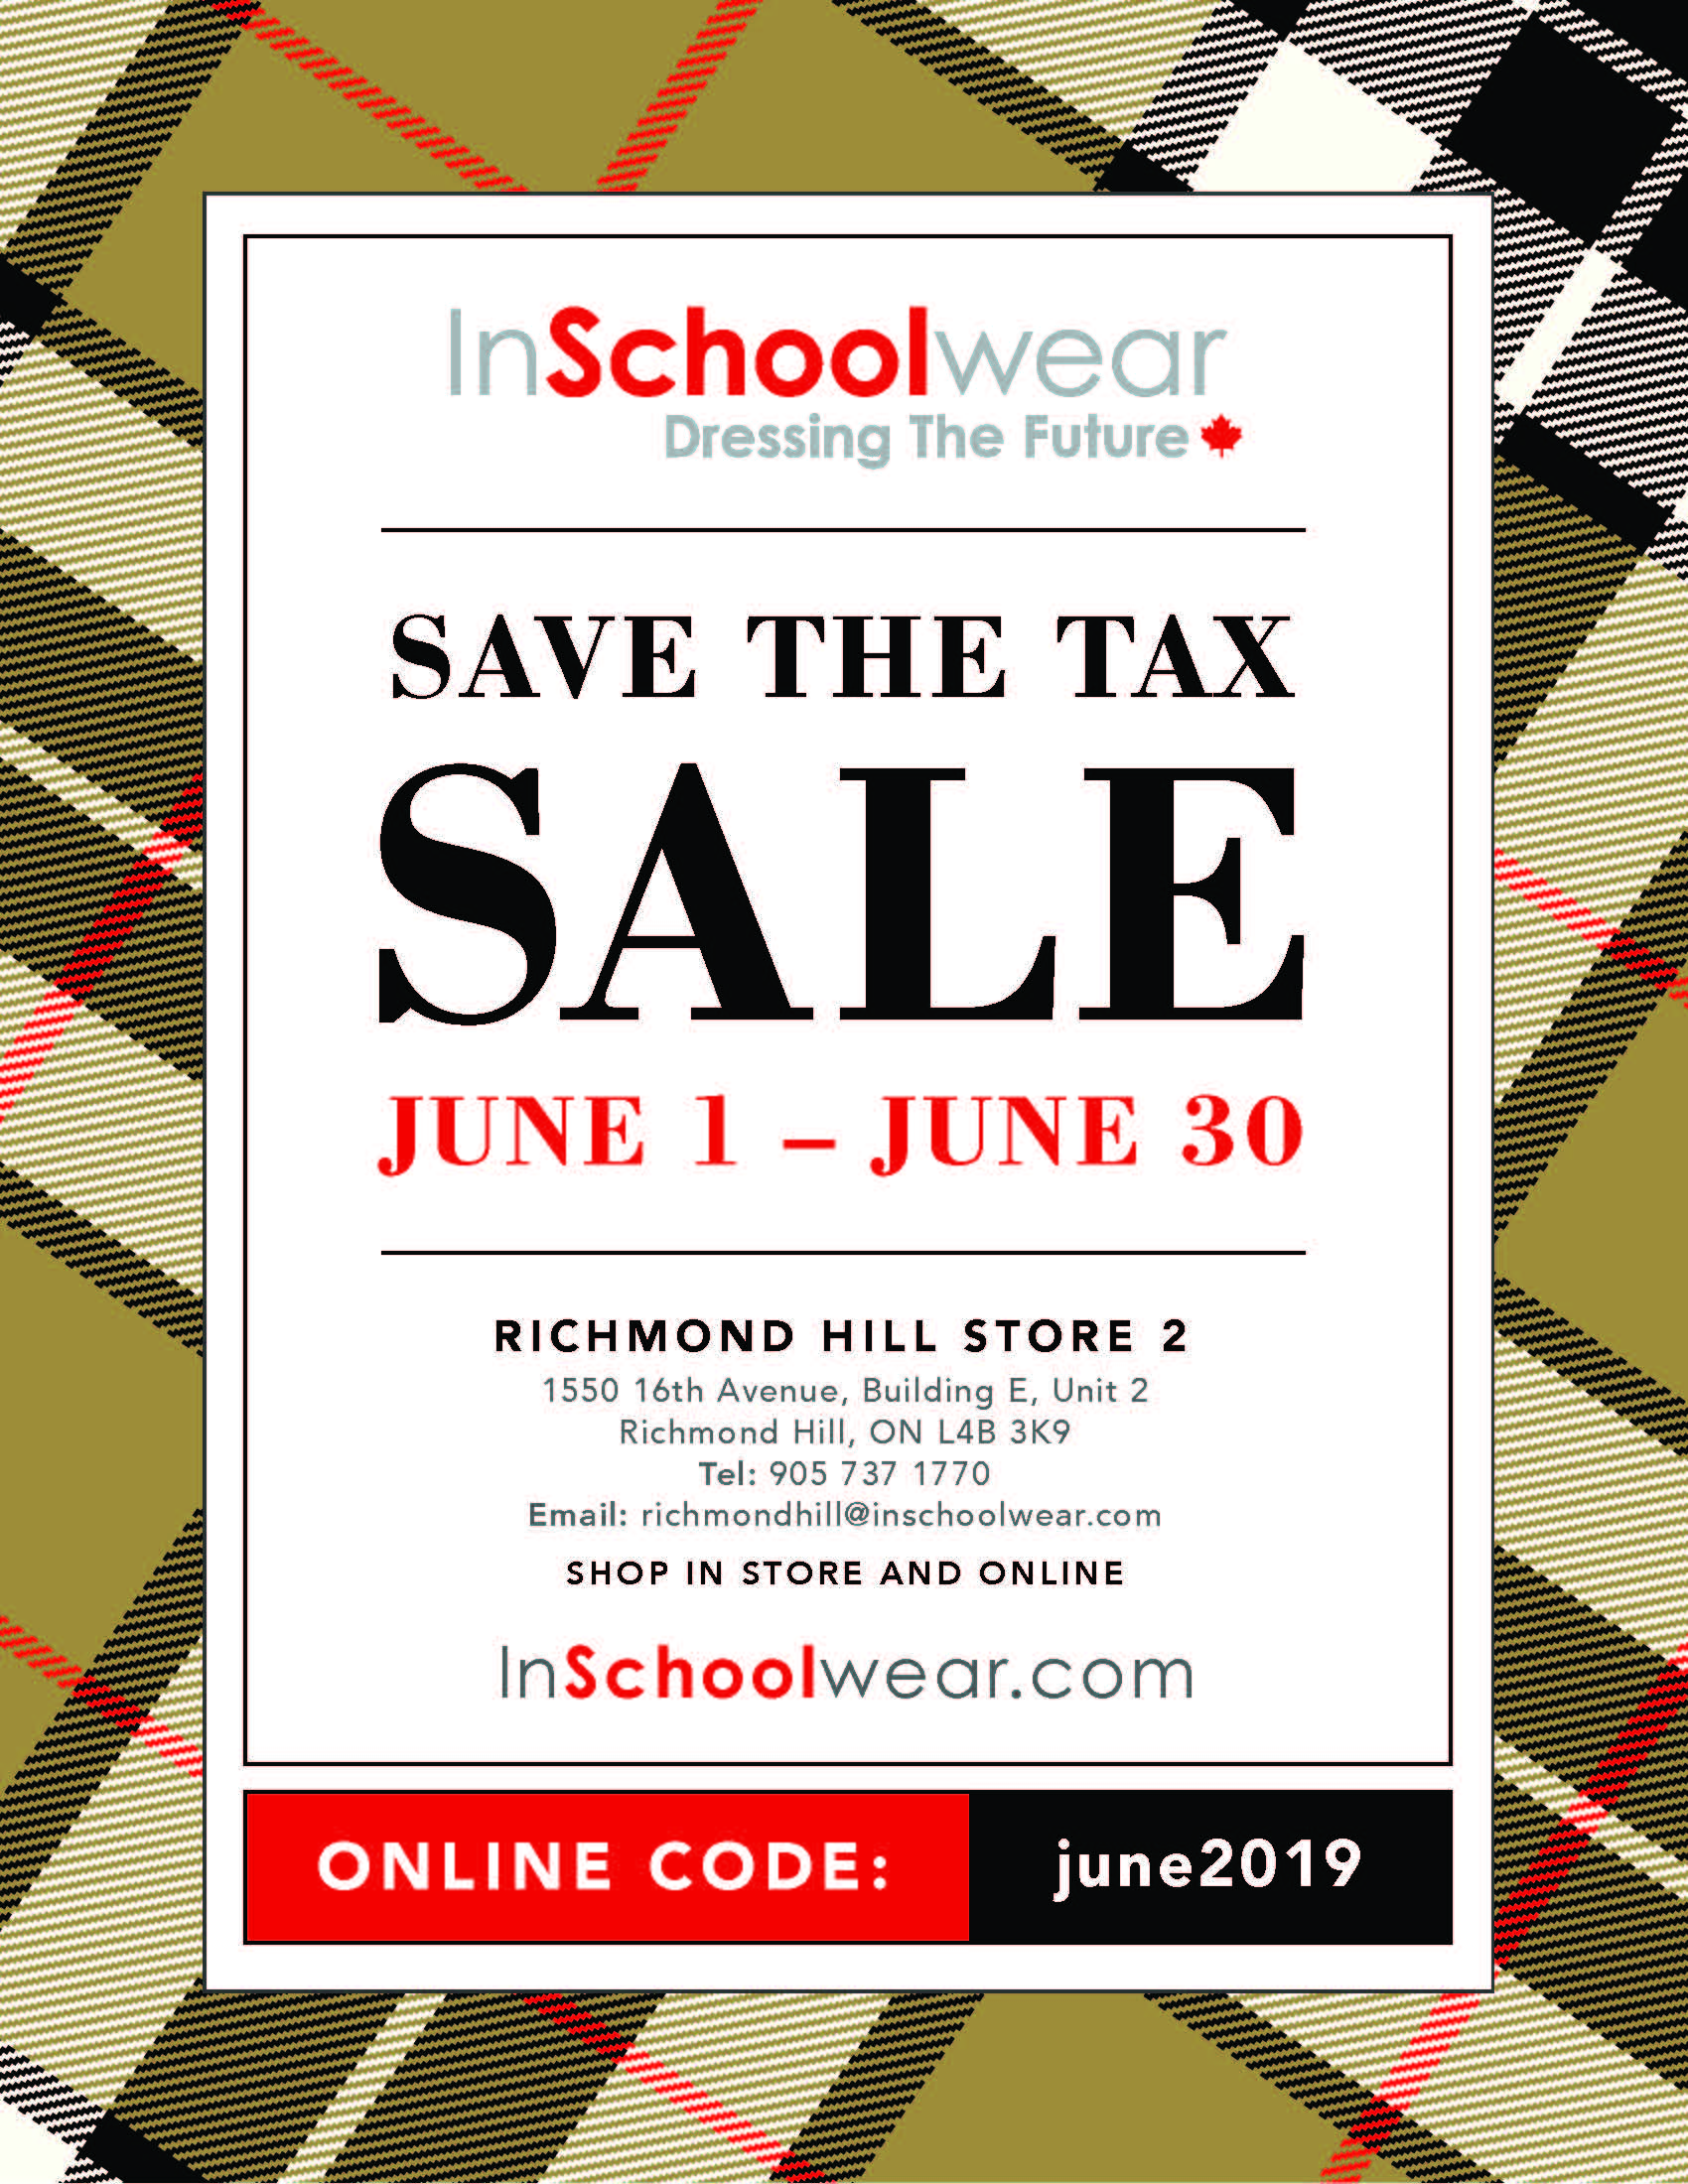 flyer from InSchoolwear promoting Save the Tax during June.